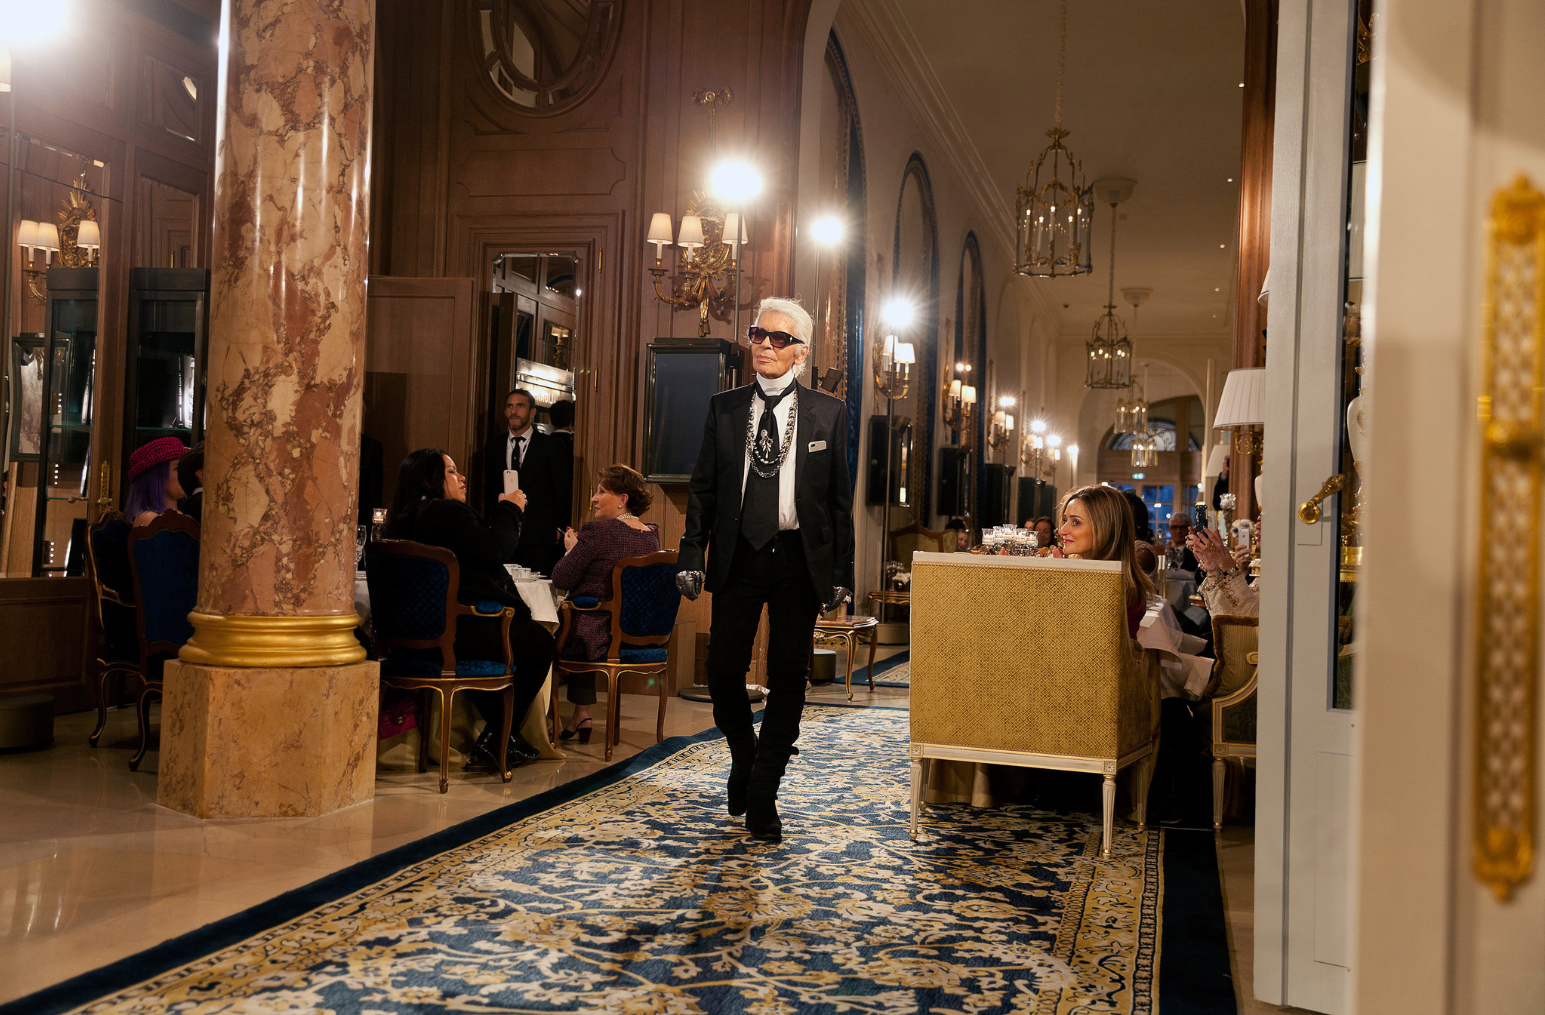 Karl Lagerfeld taking a bow after the Chanel Métiers d'Art Show on December 6th. Image via T Magazine - The New York Times.